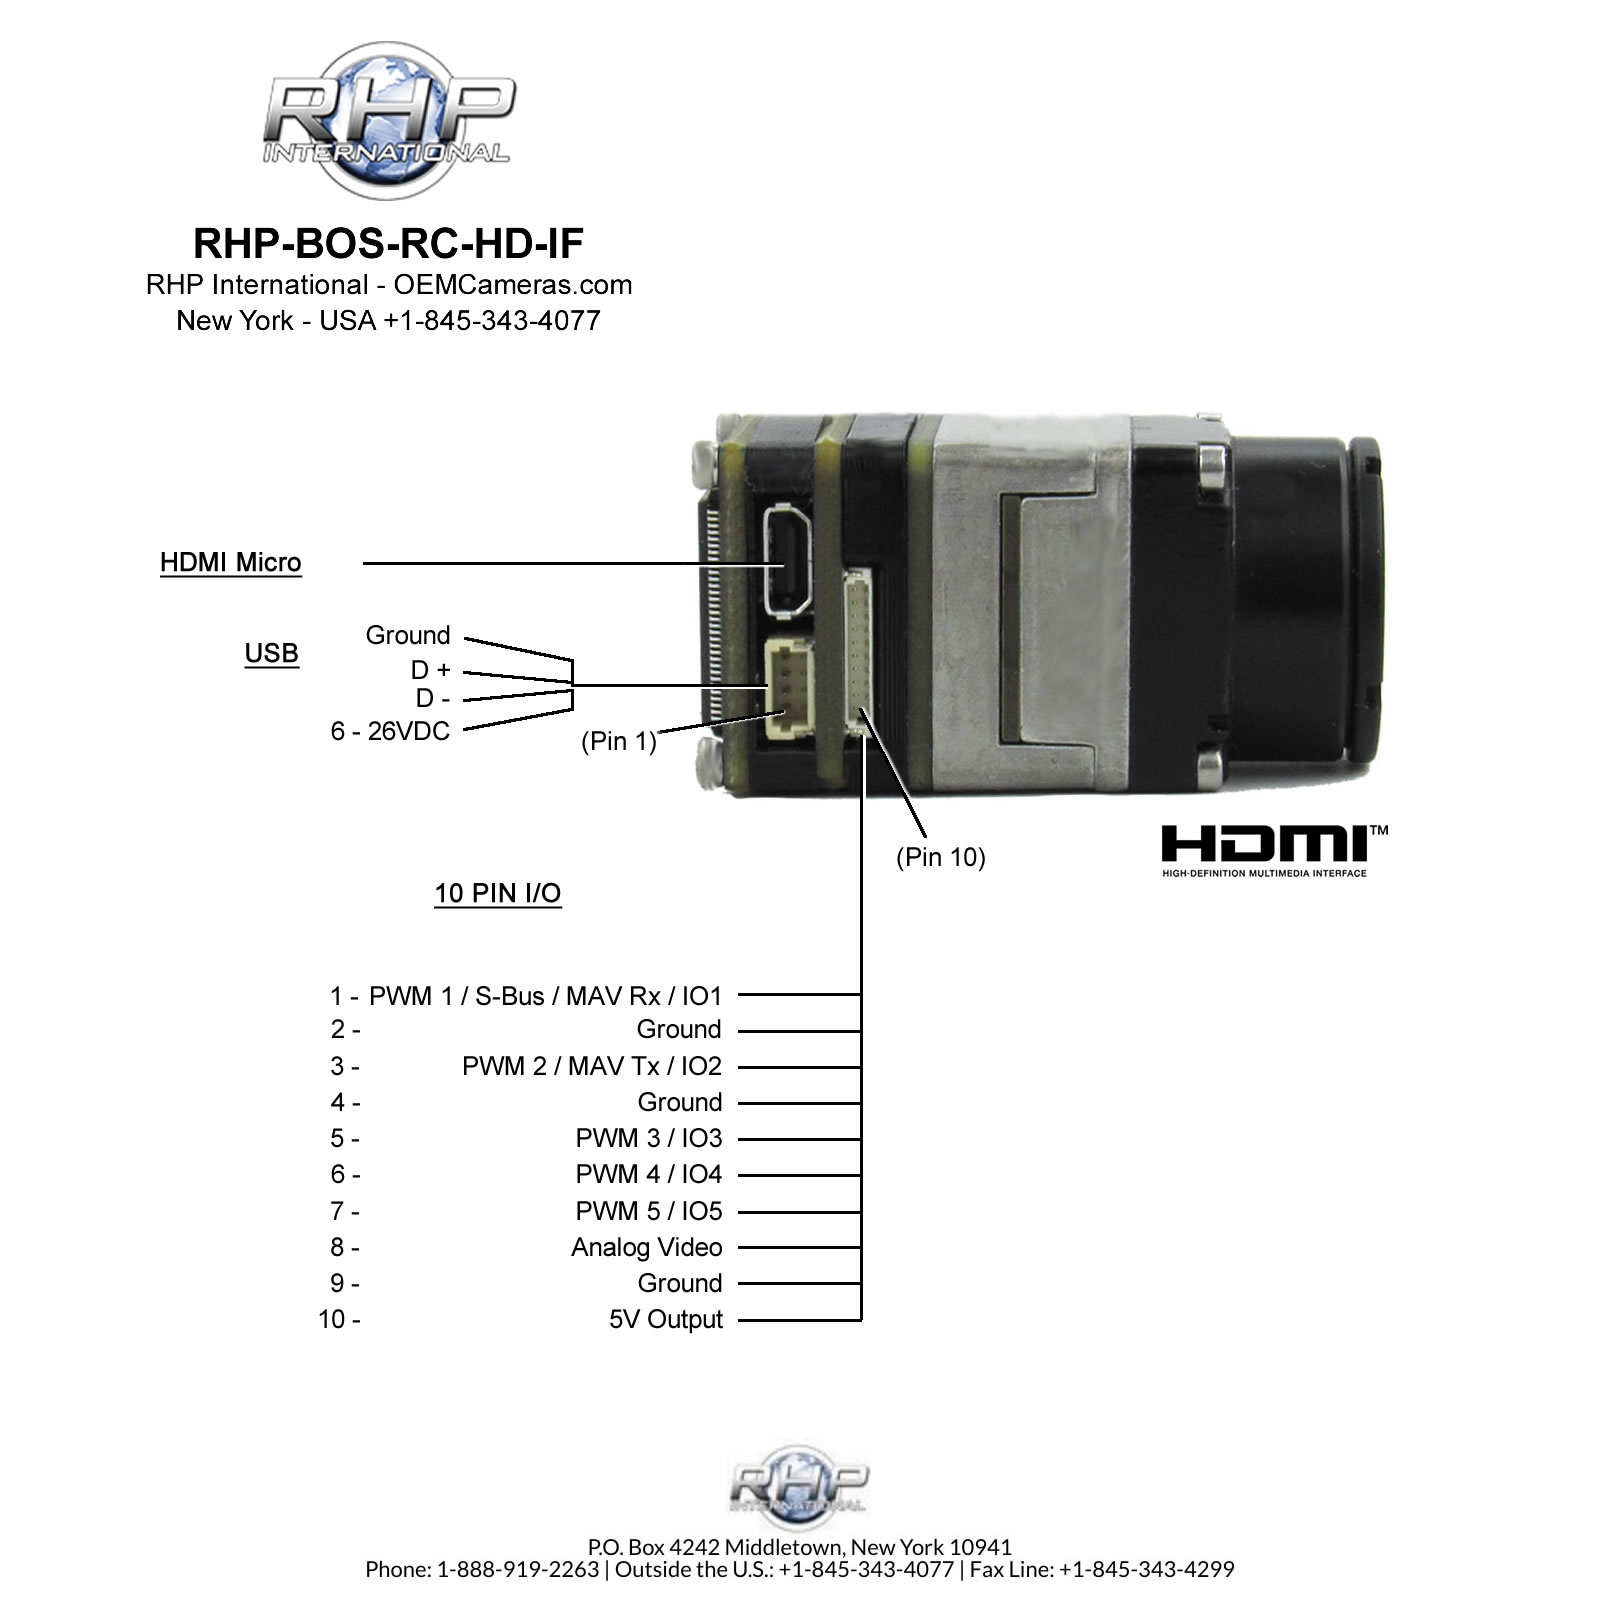 RHP Boson RC-HD-IF Remote Control Pin Out